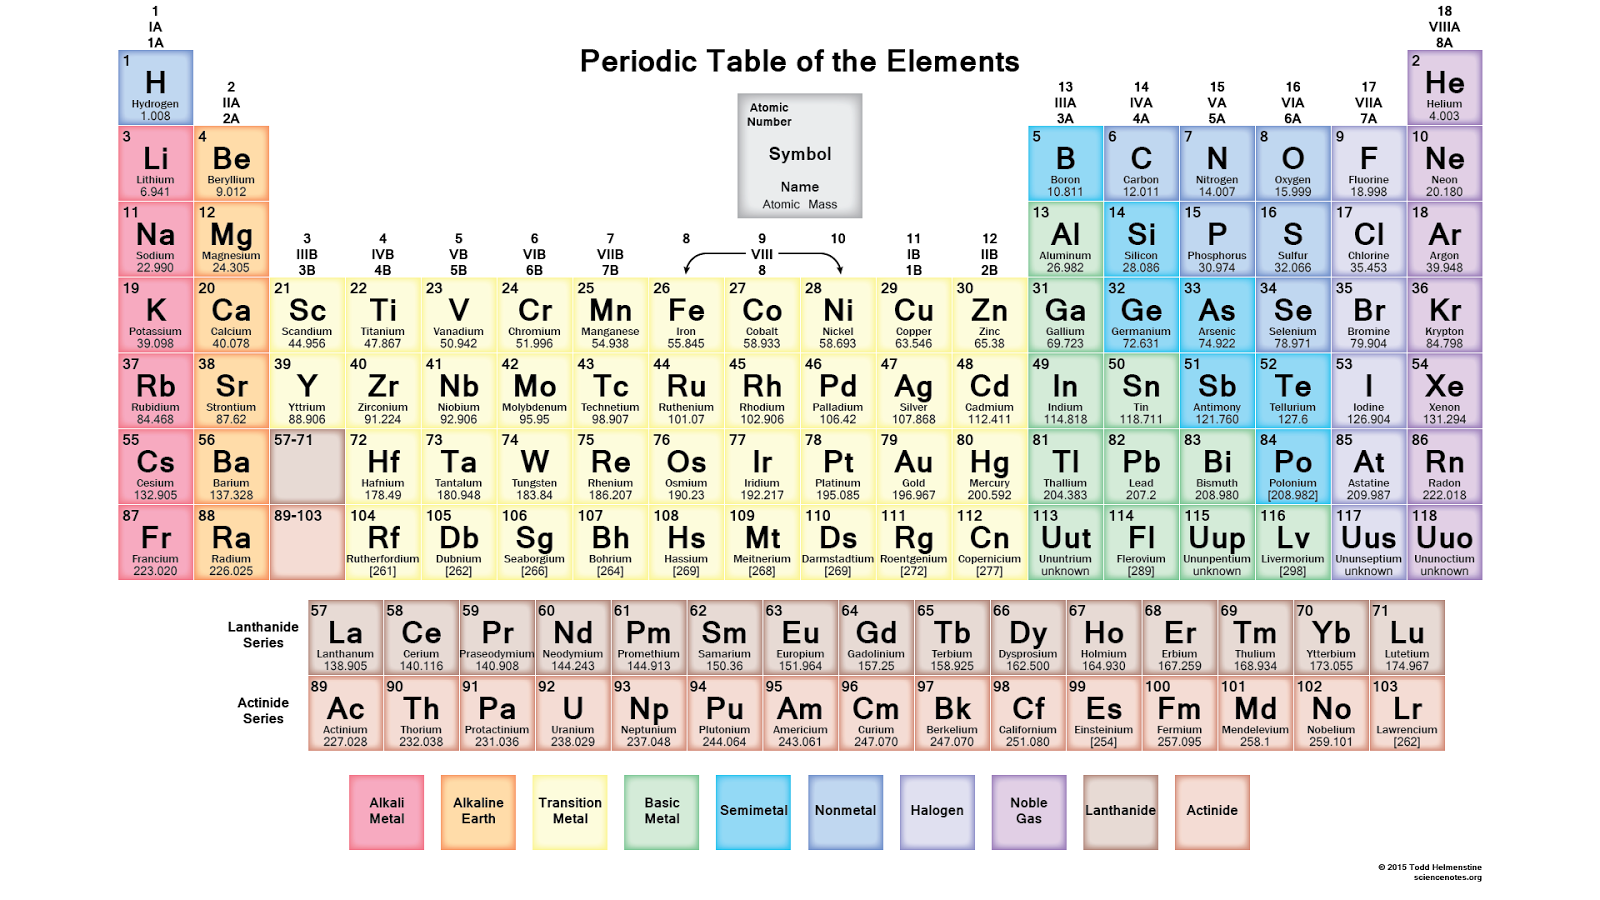 Winnie walter blog the gossip column with taheerah atchia no no mention of chemical elements can go unchecked without reference to the periodic table brace yourselves because here comes the chemistry folks gamestrikefo Image collections